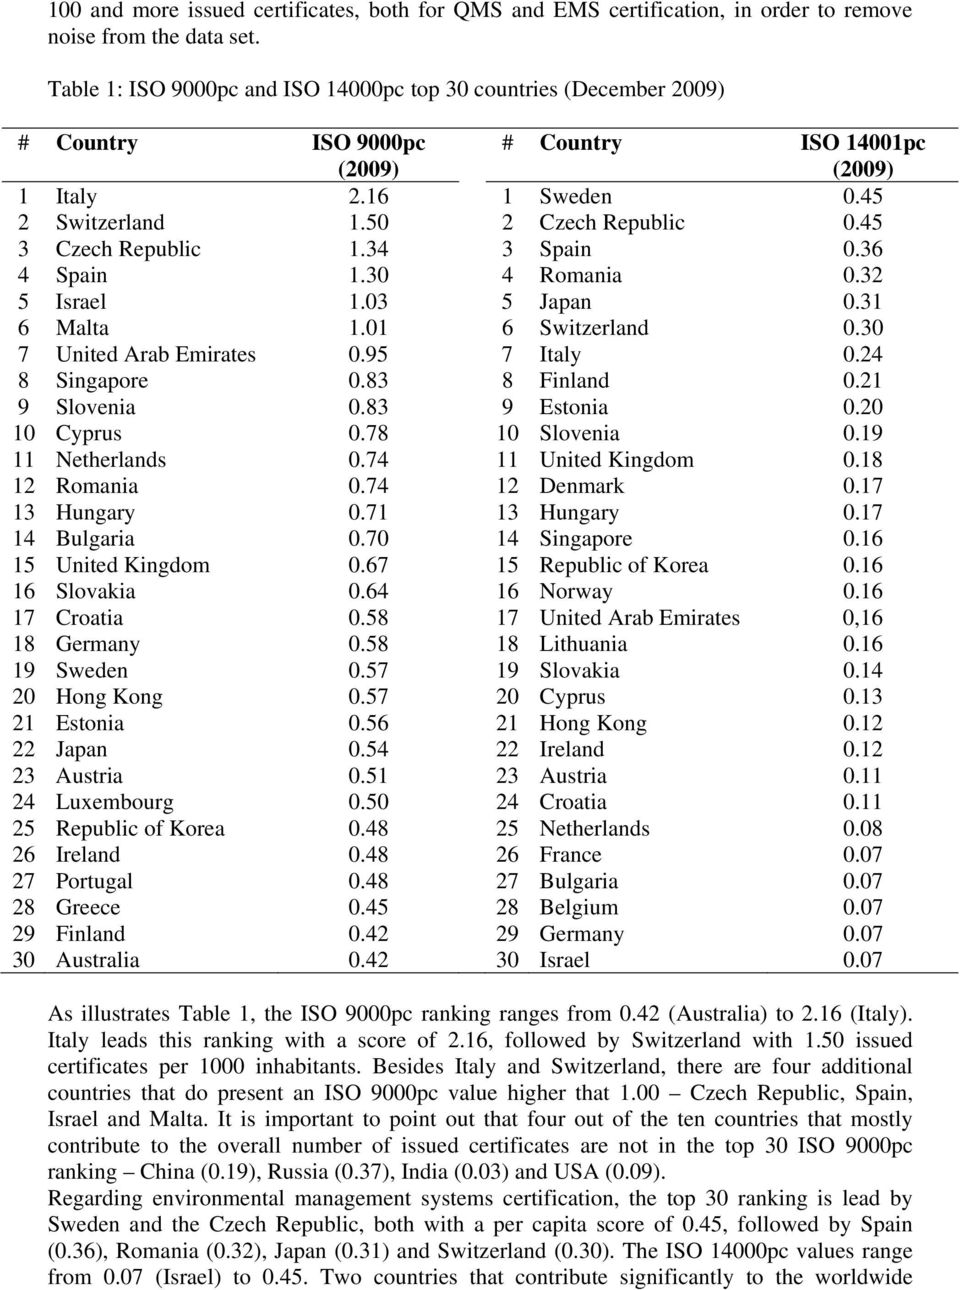 45 3 Czech Republic 1.34 3 Spain 0.36 4 Spain 1.30 4 Romania 0.32 5 Israel 1.03 5 Japan 0.31 6 Malta 1.01 6 Switzerland 0.30 7 United Arab Emirates 0.95 7 Italy 0.24 8 Singapore 0.83 8 Finland 0.